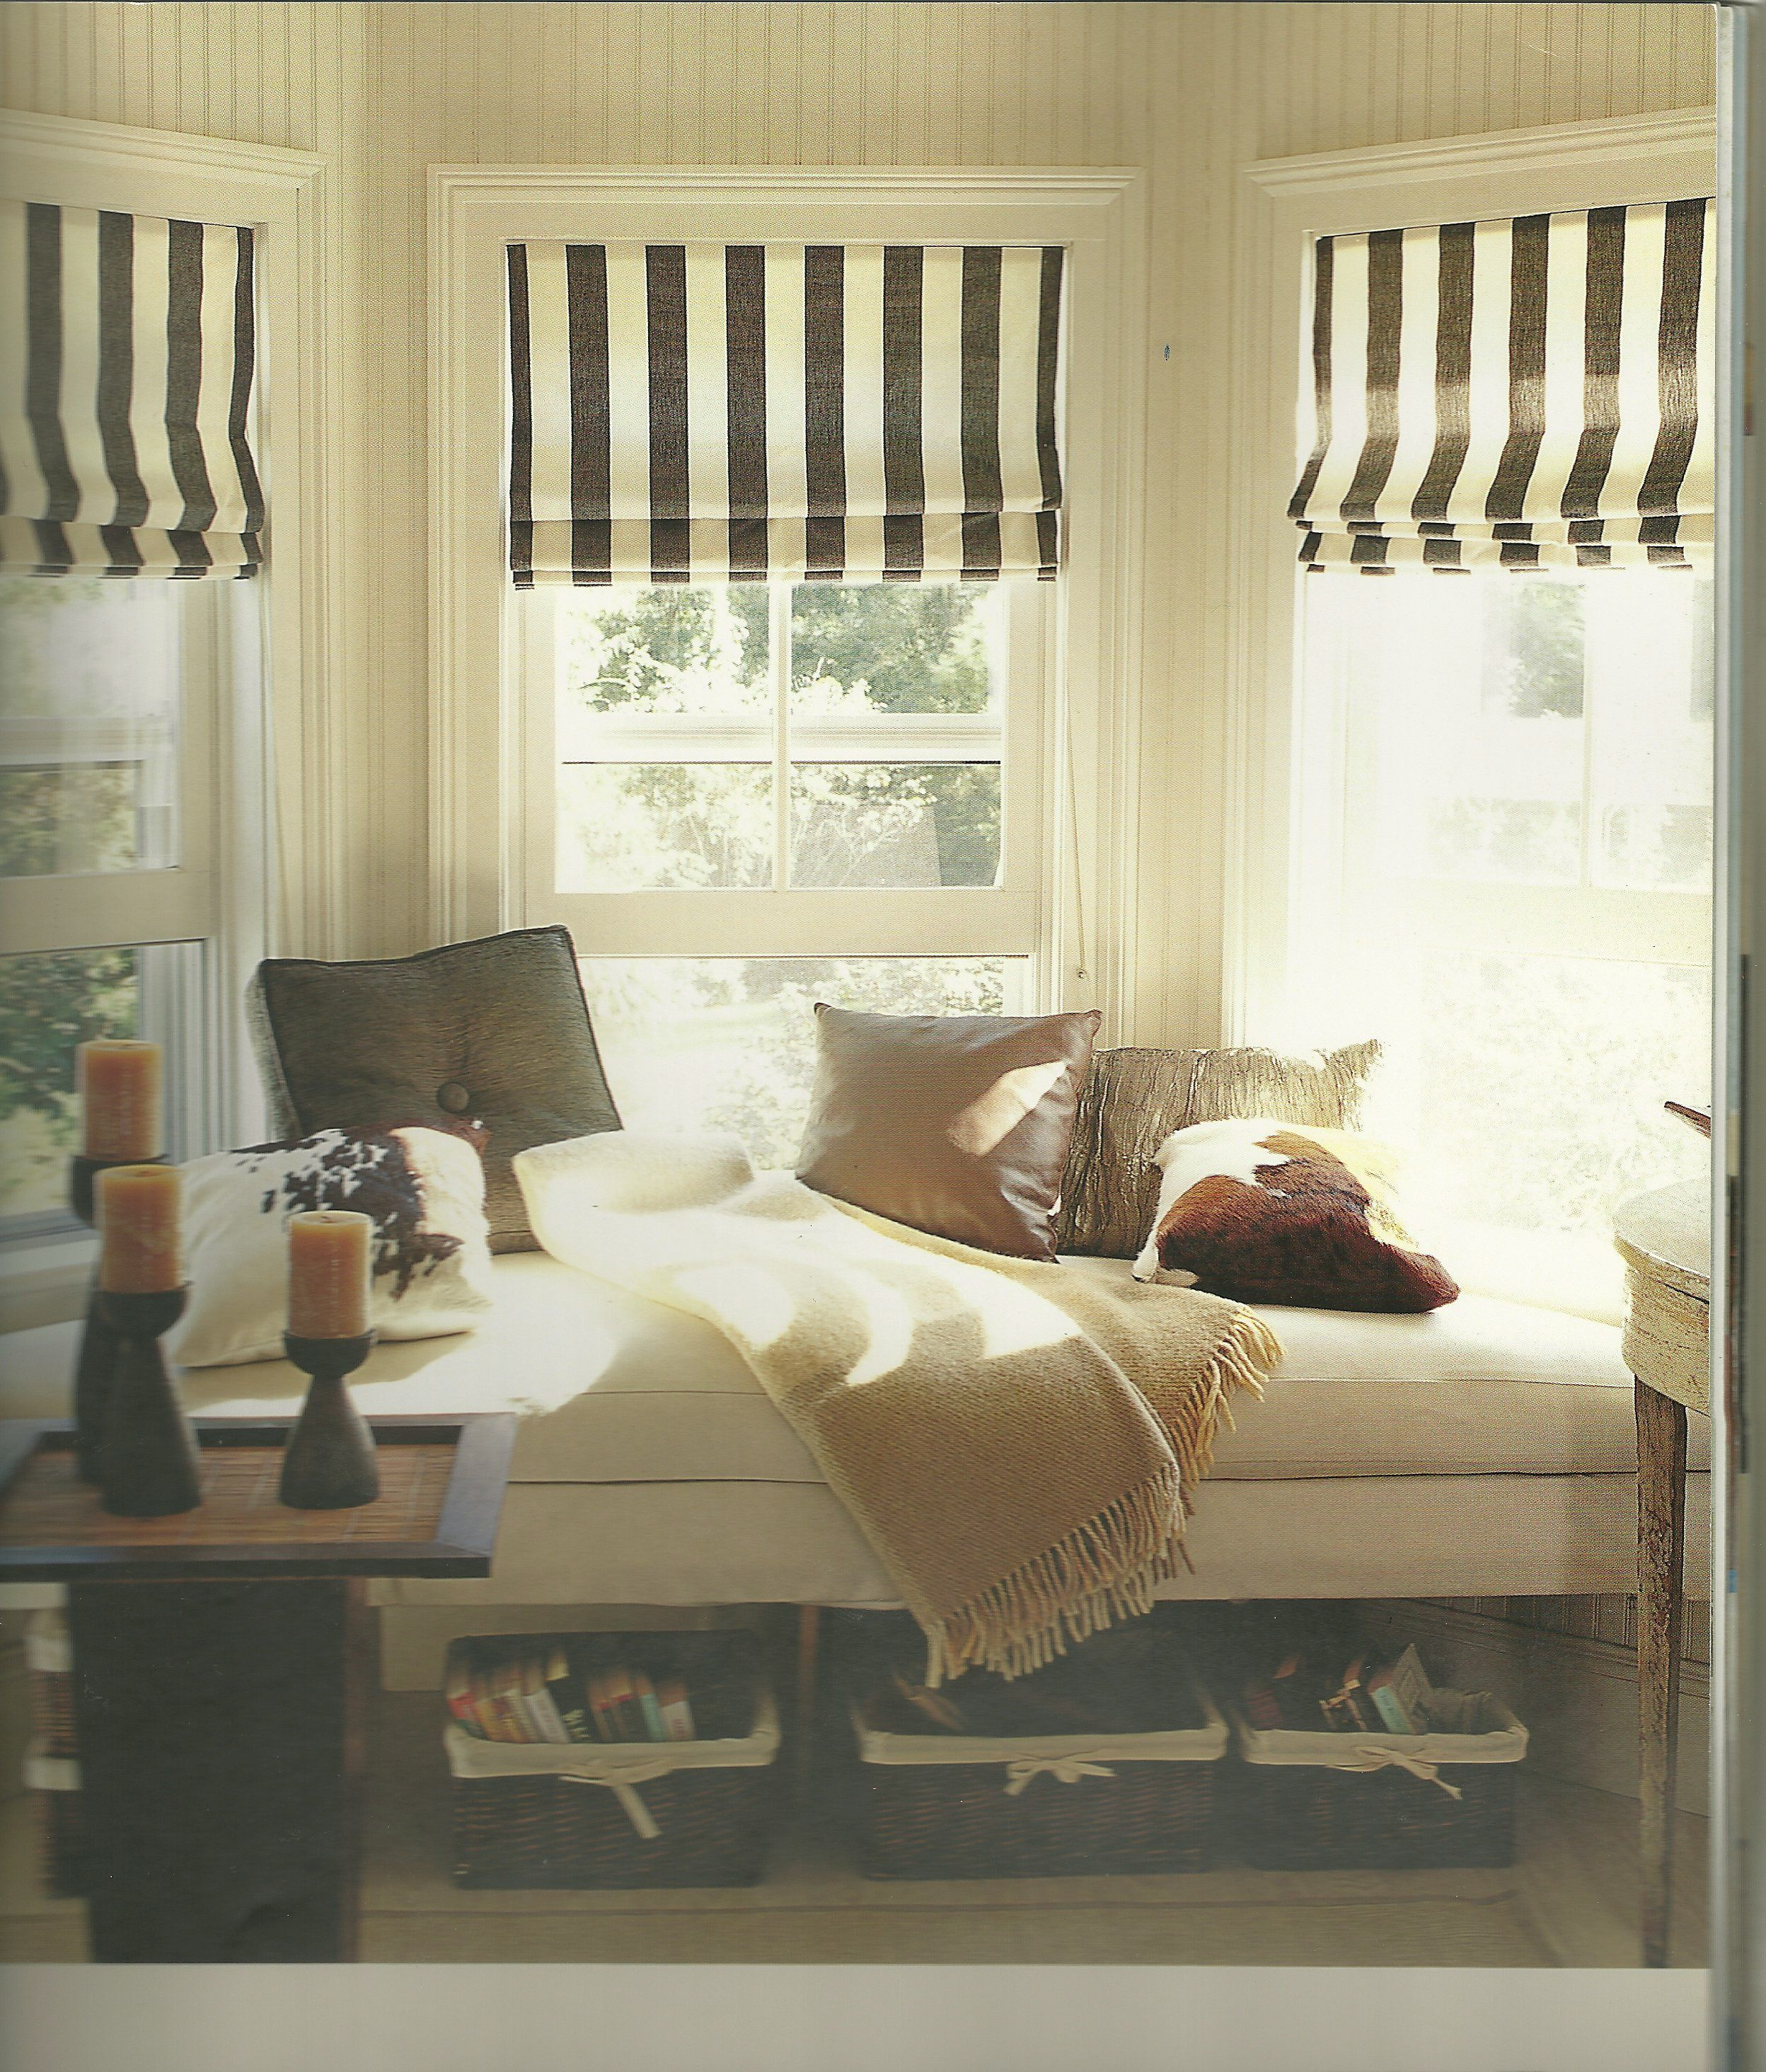 50 Cool Bay Window Decorating Ideas: More Stripes. They Look The Best In An Inside Mount. Need